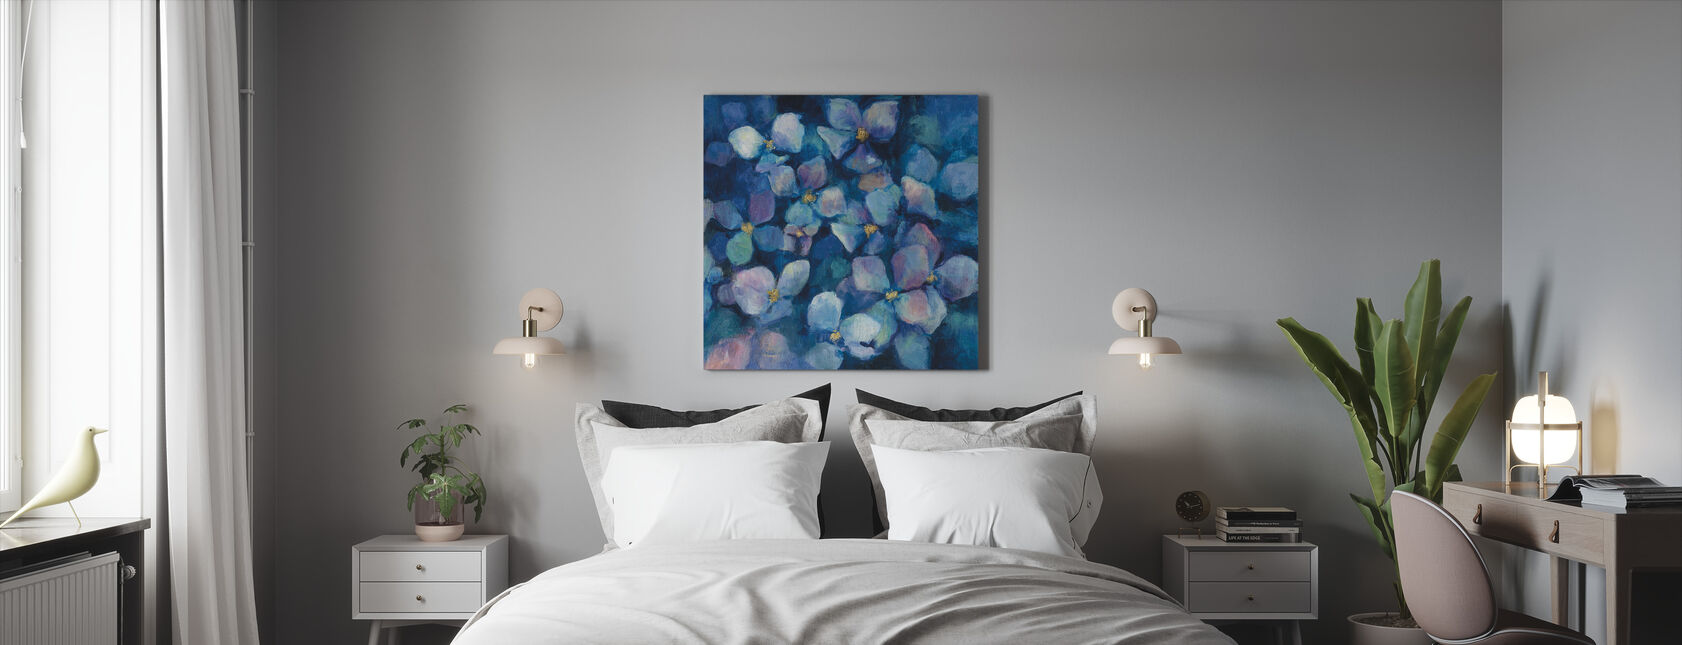 Midnight Blue Hydrangeas with Gold - Canvas print - Bedroom